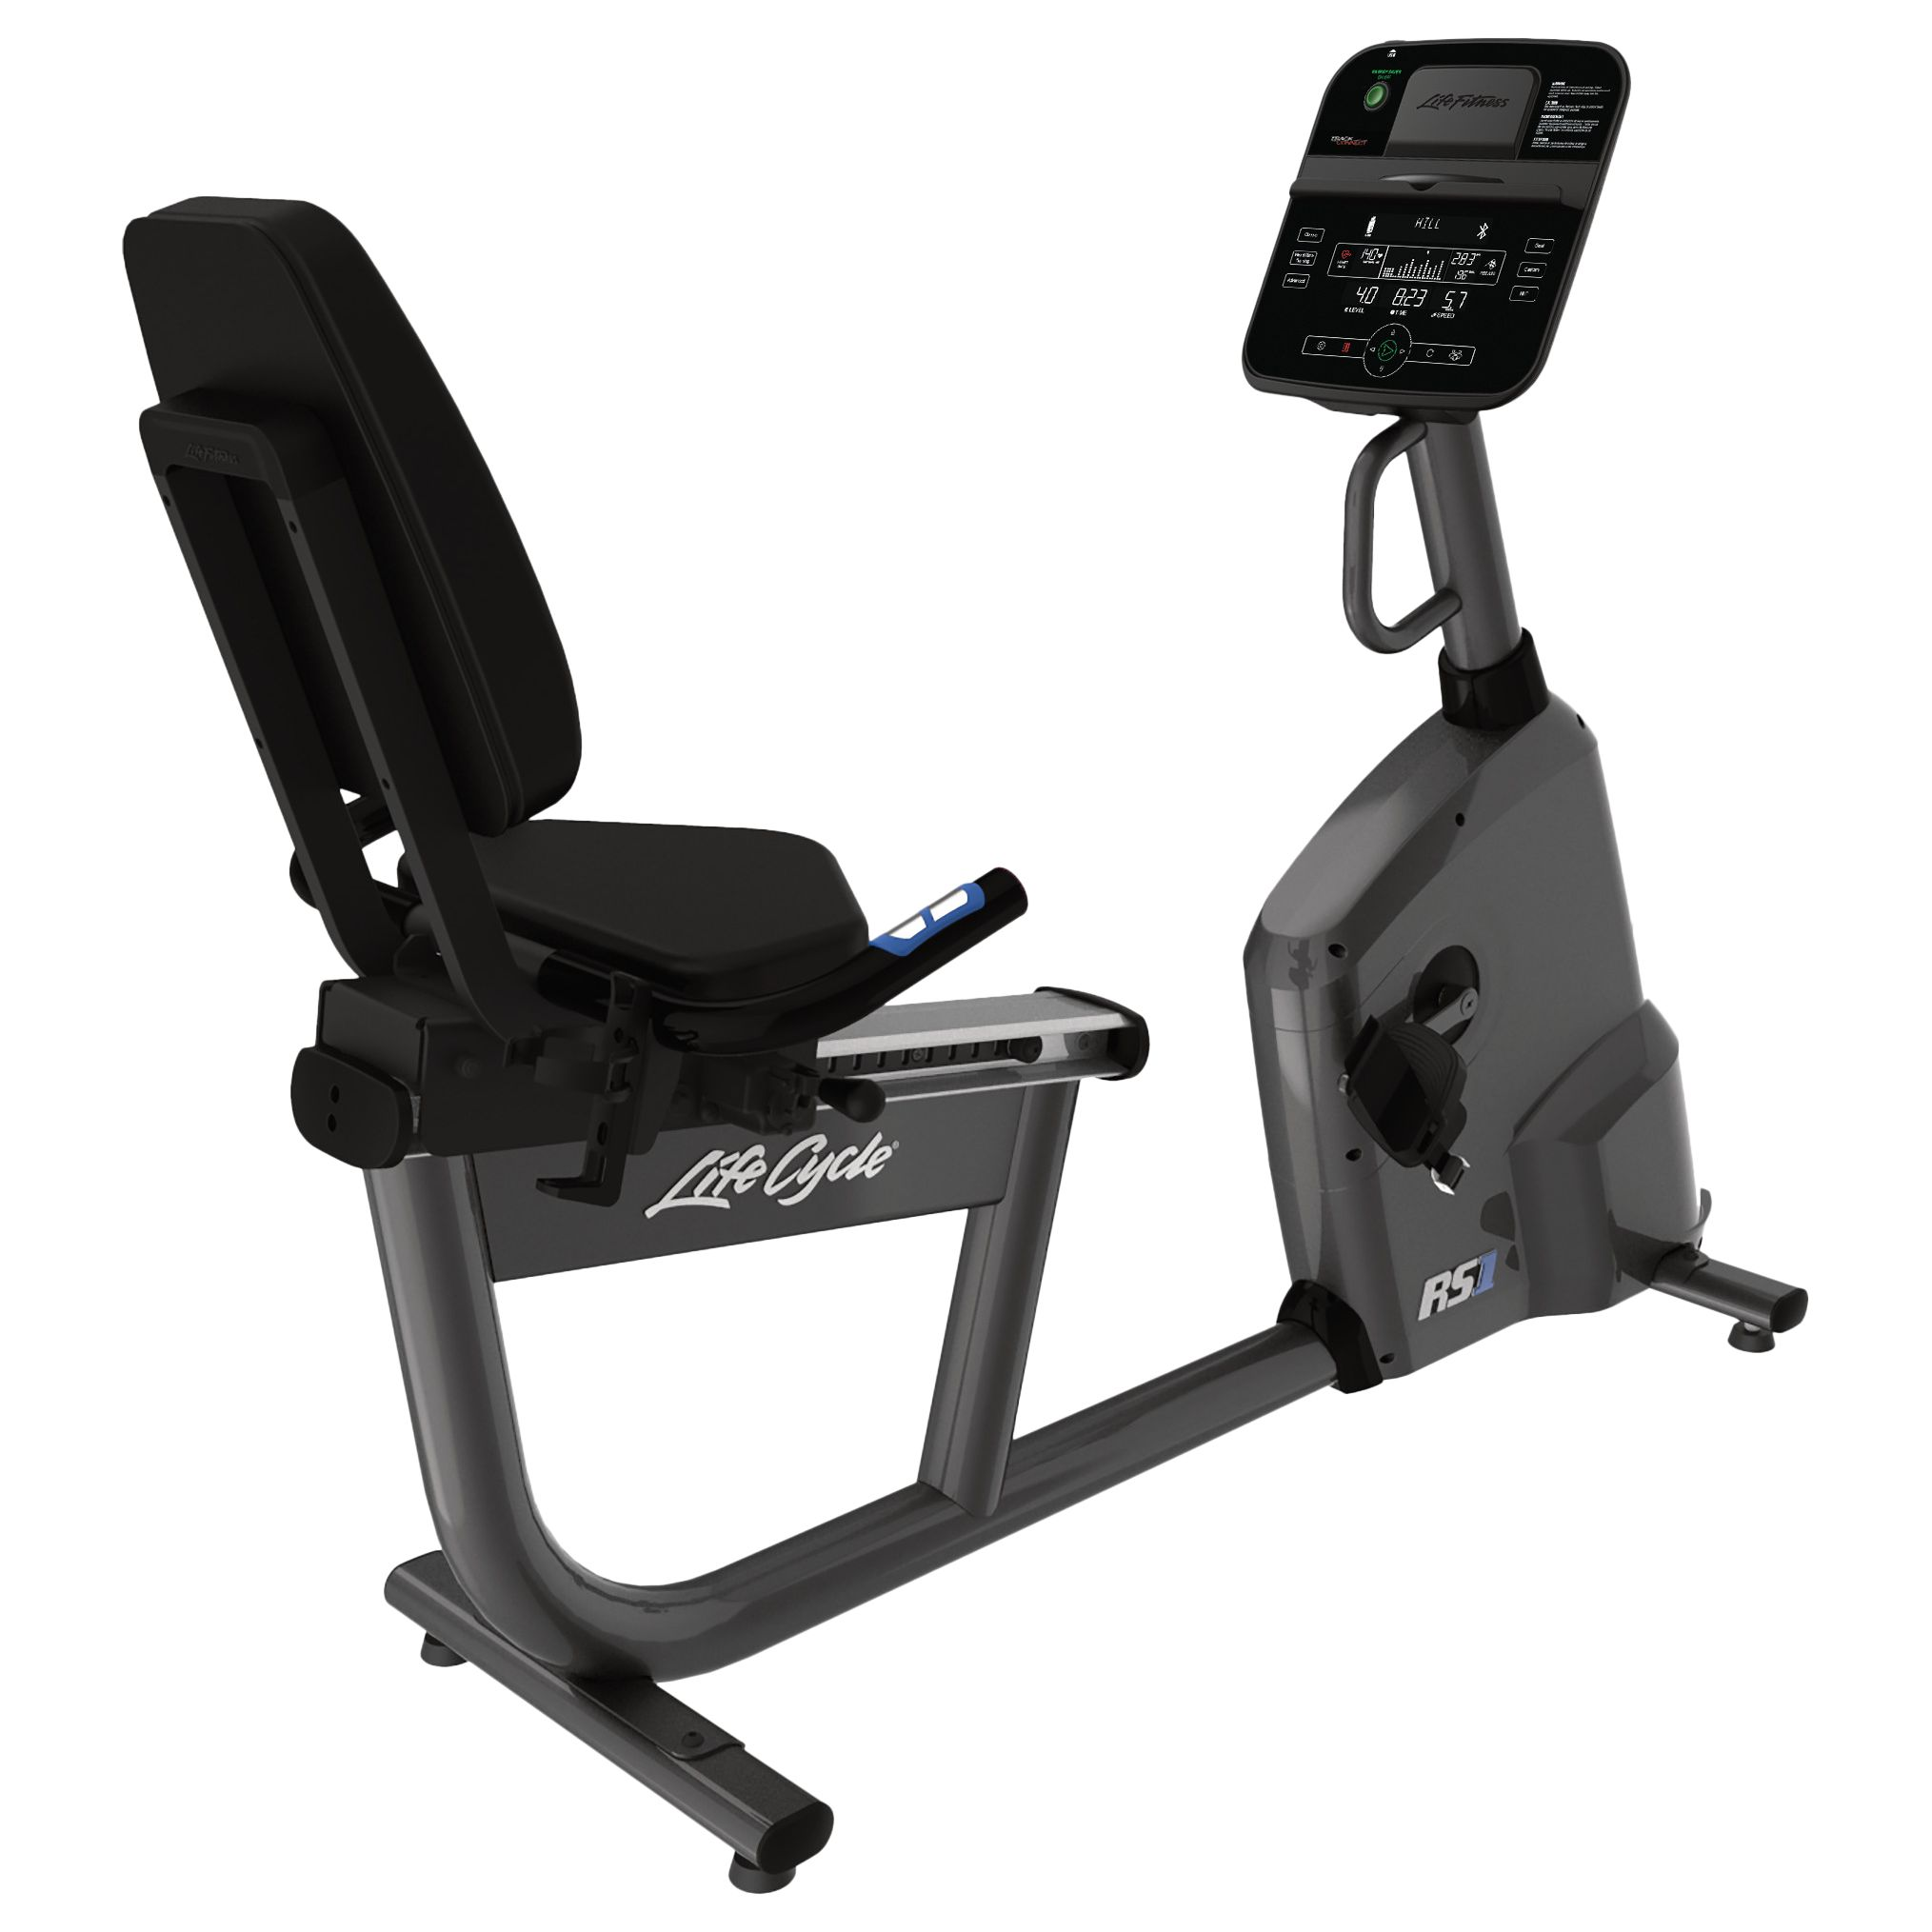 Life Fitness Life Fitness RS1 Lifecycle Recumbent Exercise Bike, Track Console